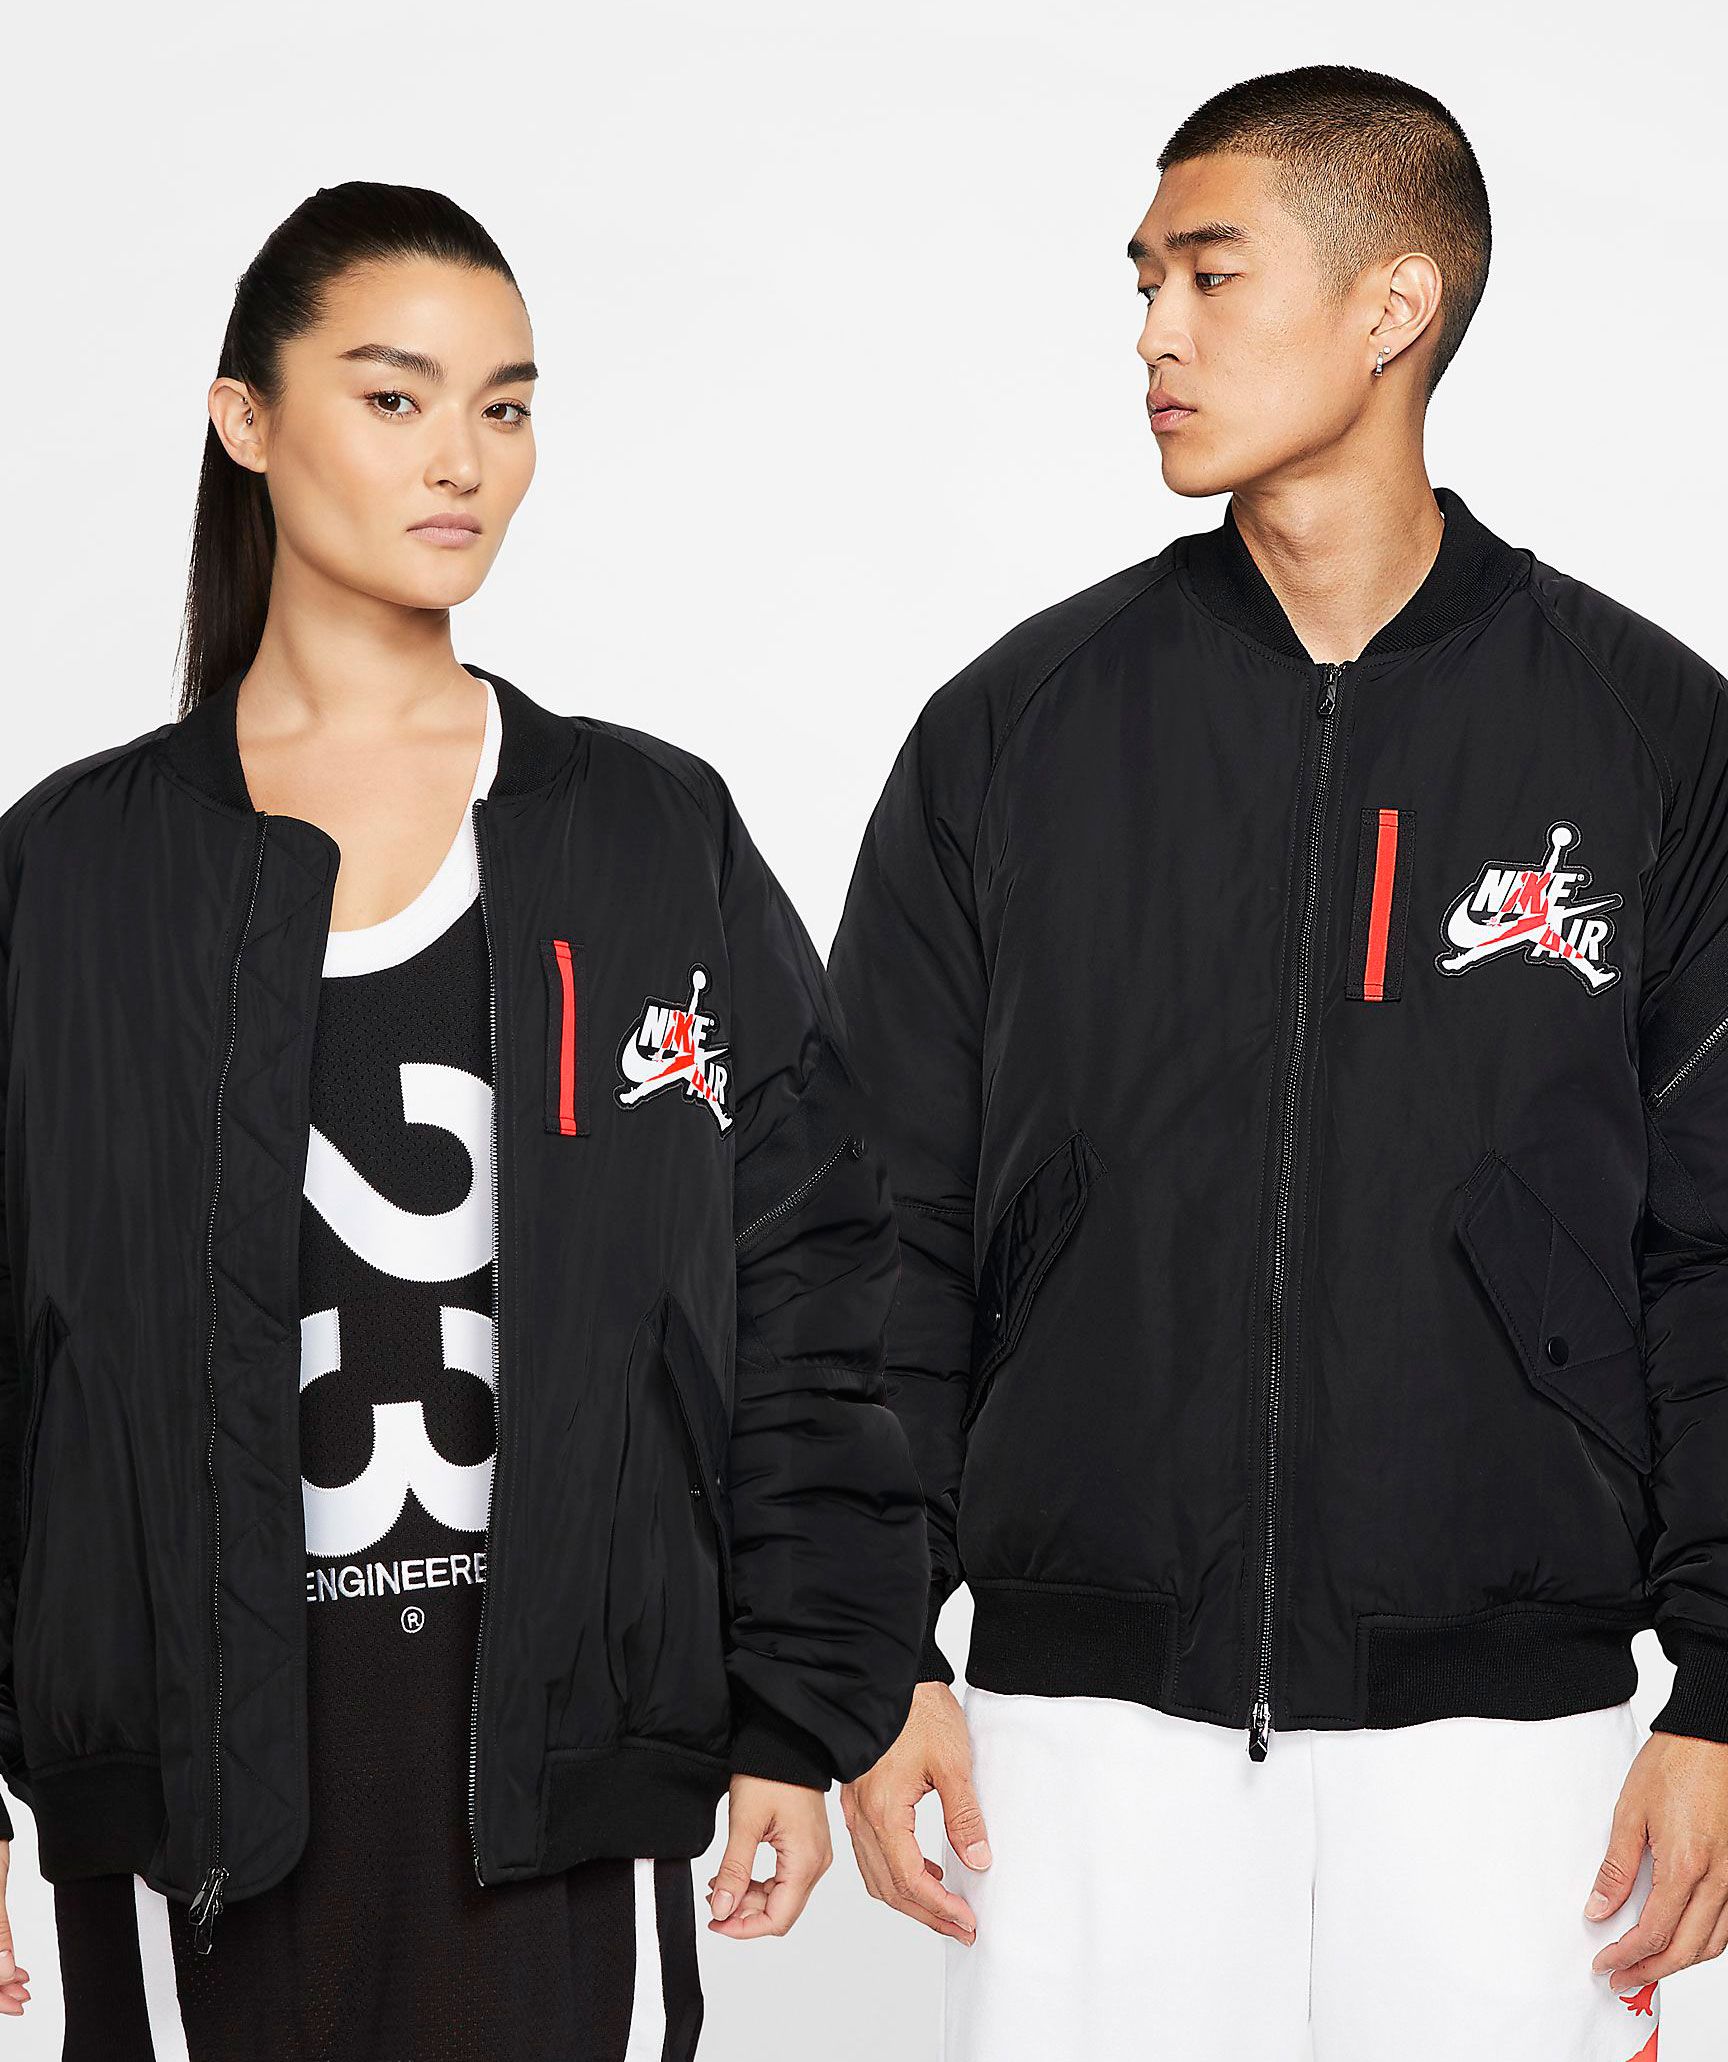 Universidad En cantidad Negligencia médica  Jordan Black Infrared Wings MA 1 Jacket | SneakerFits.com